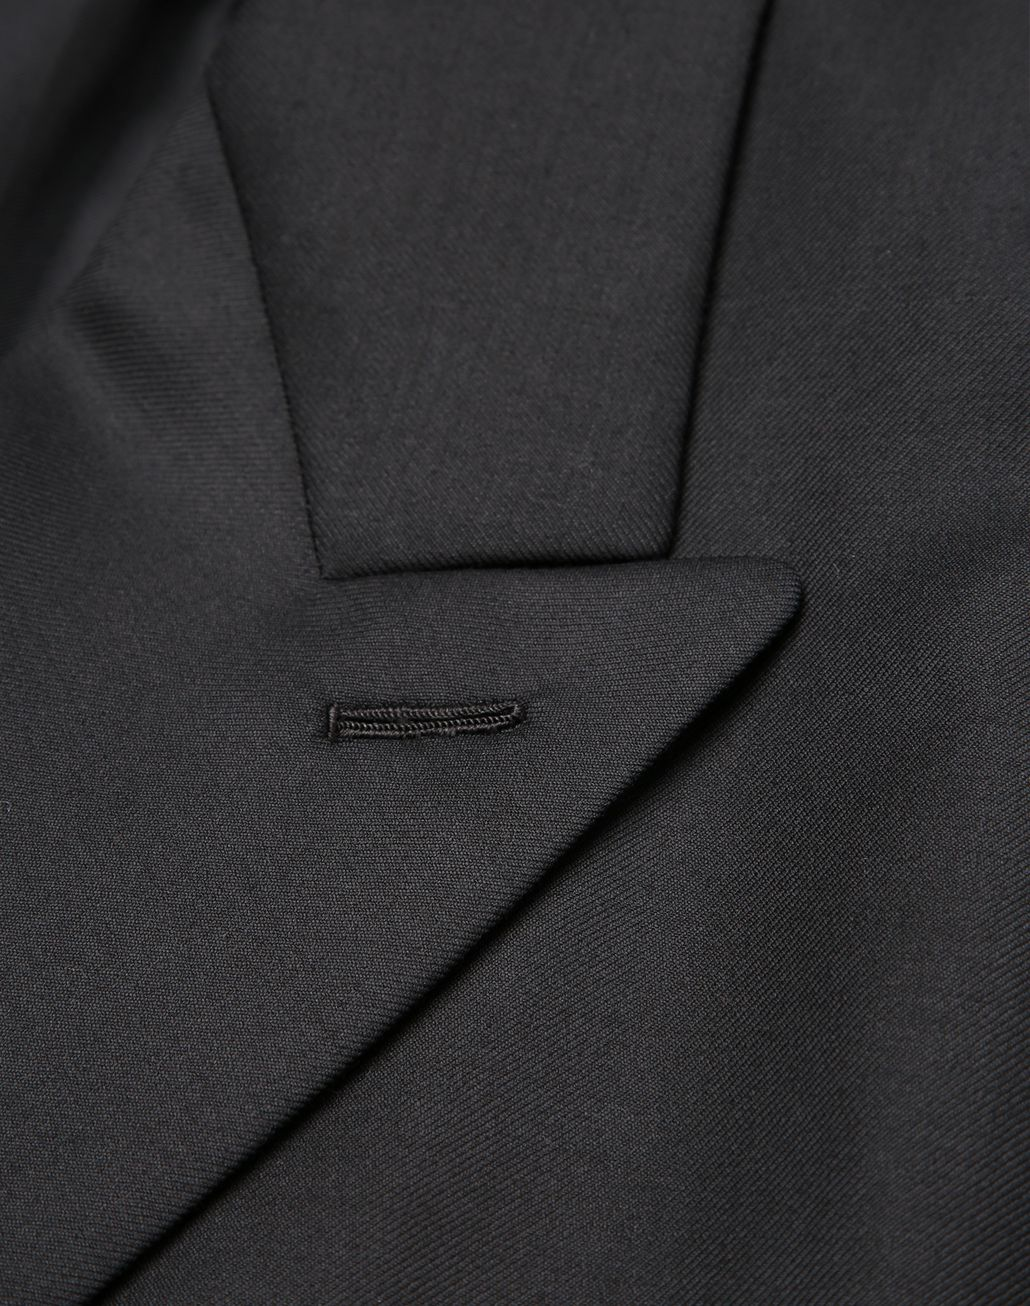 BRIONI Black Asmara Double-Breasted Suit Suits & Jackets Man e